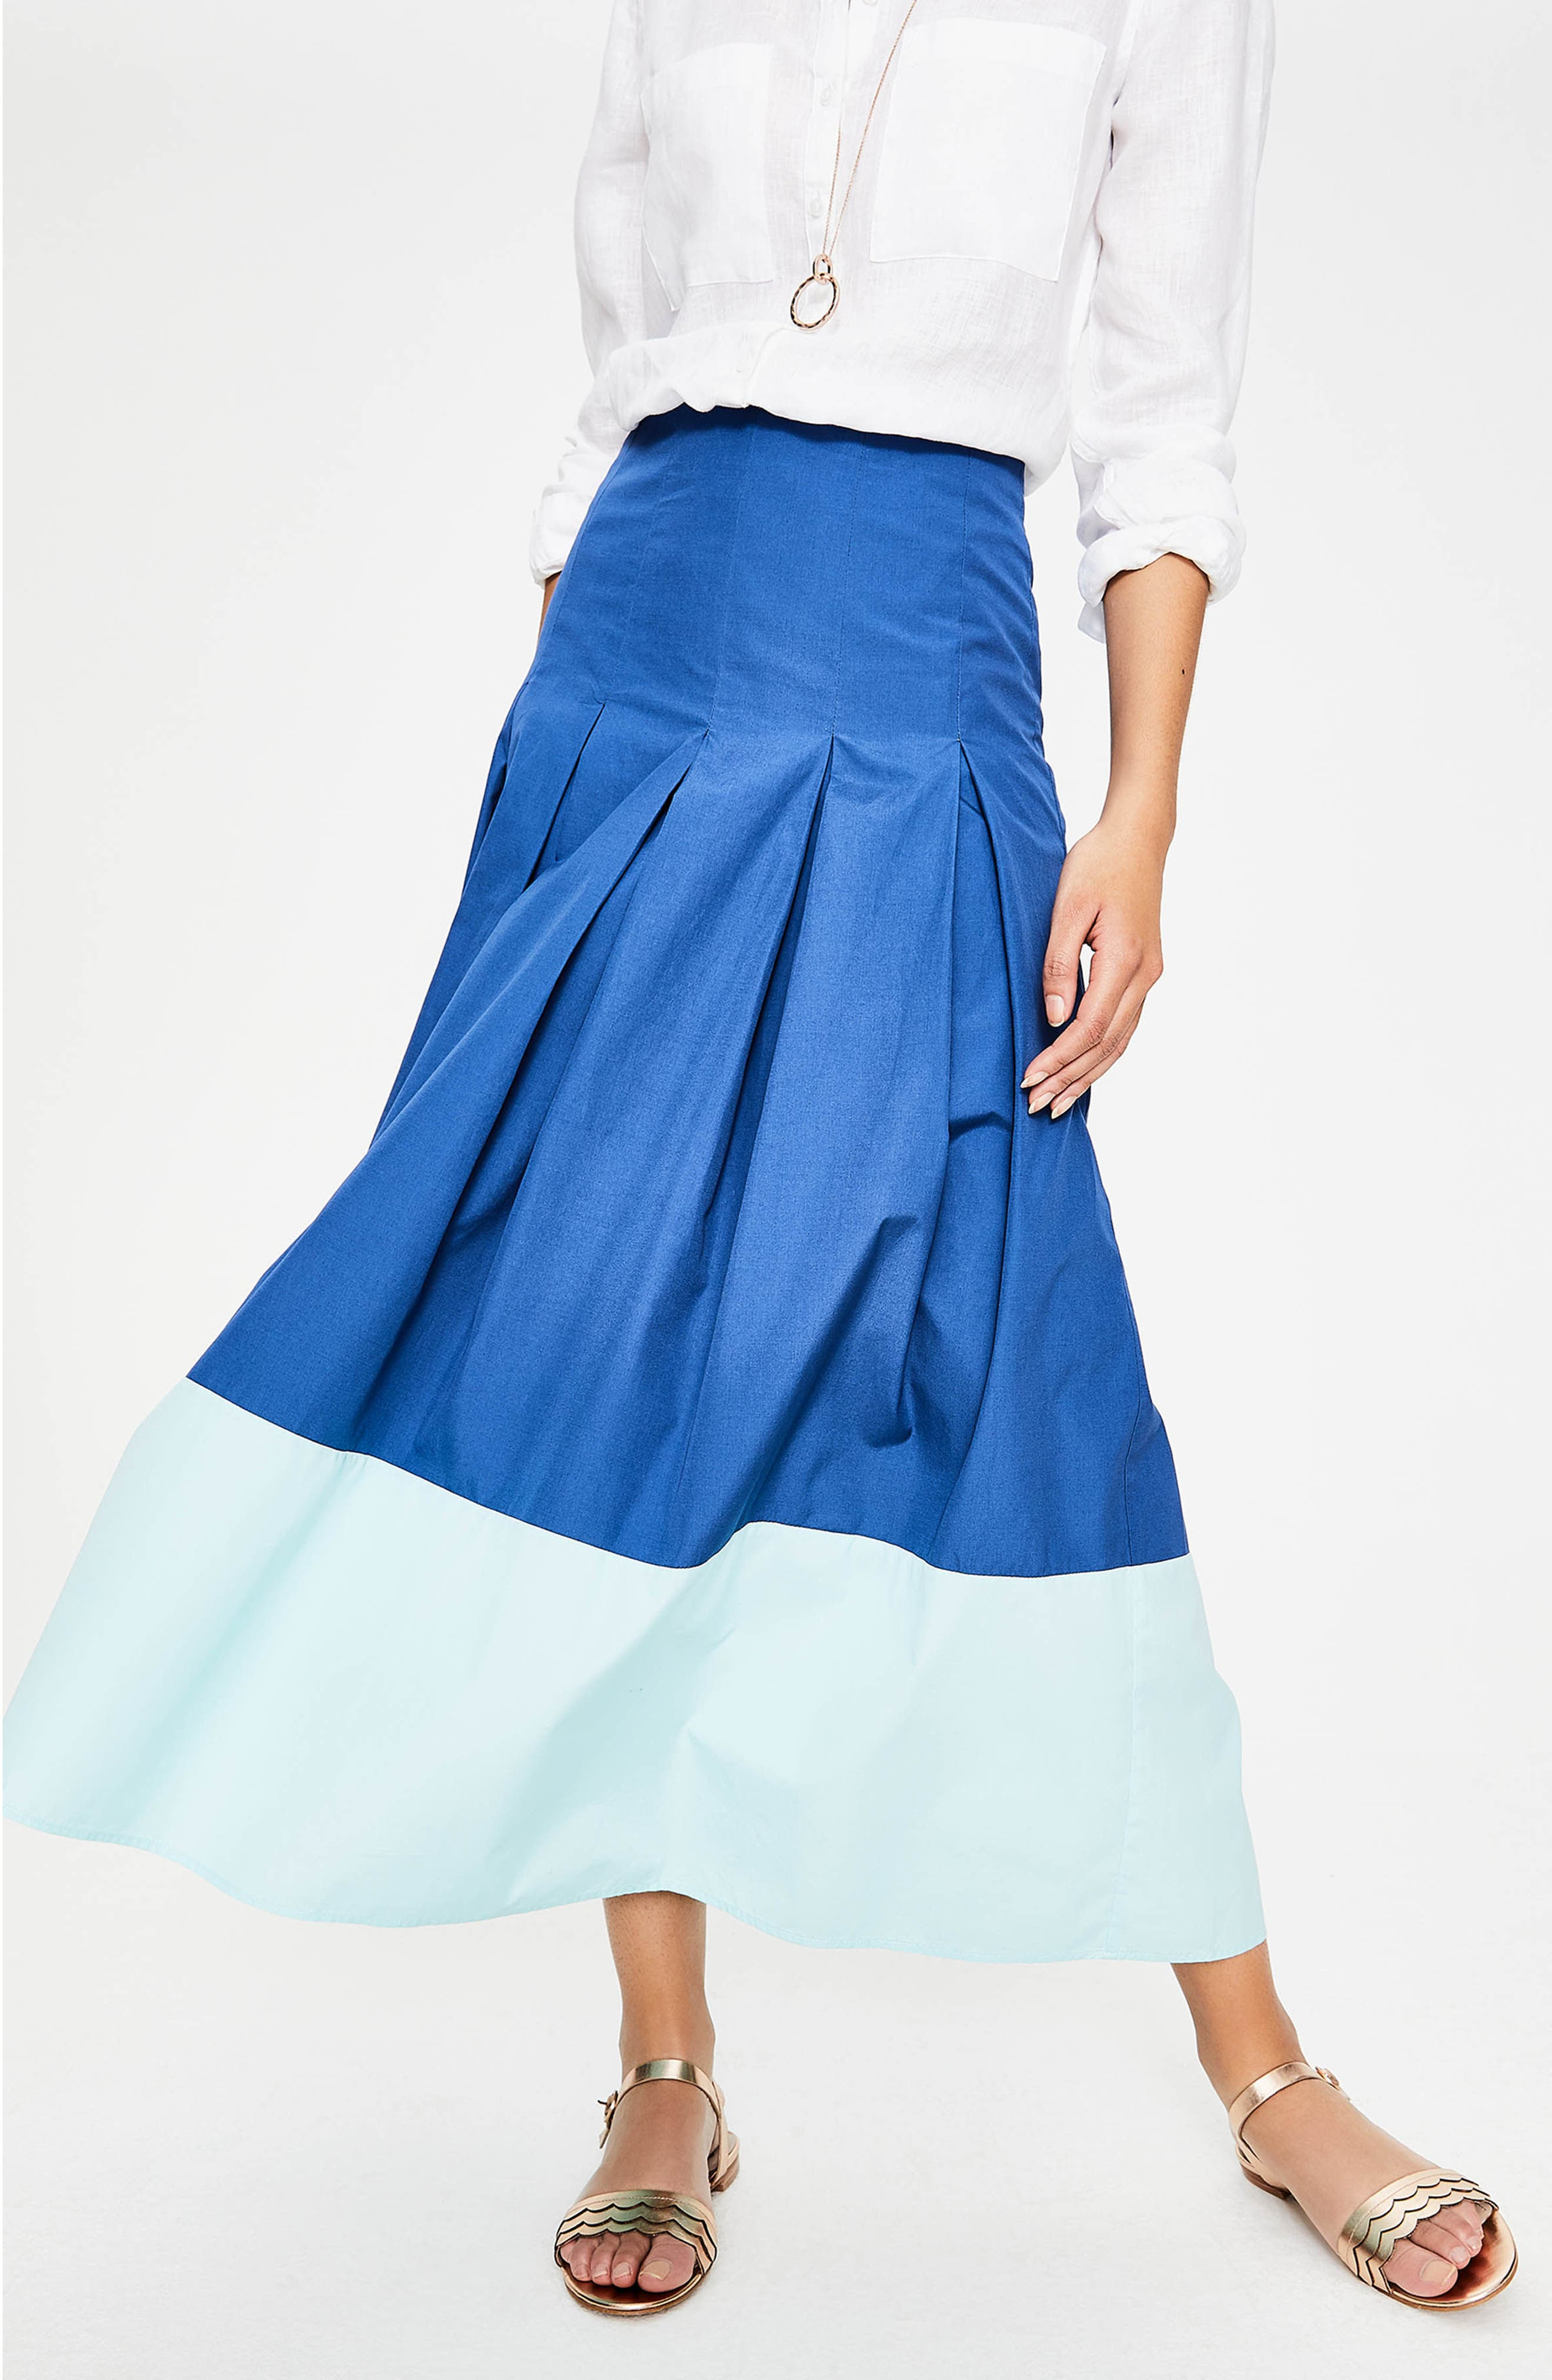 Beatrice Flare Midi Skirt,                             Alternate thumbnail 4, color,                             Riviera Blue W Rippl